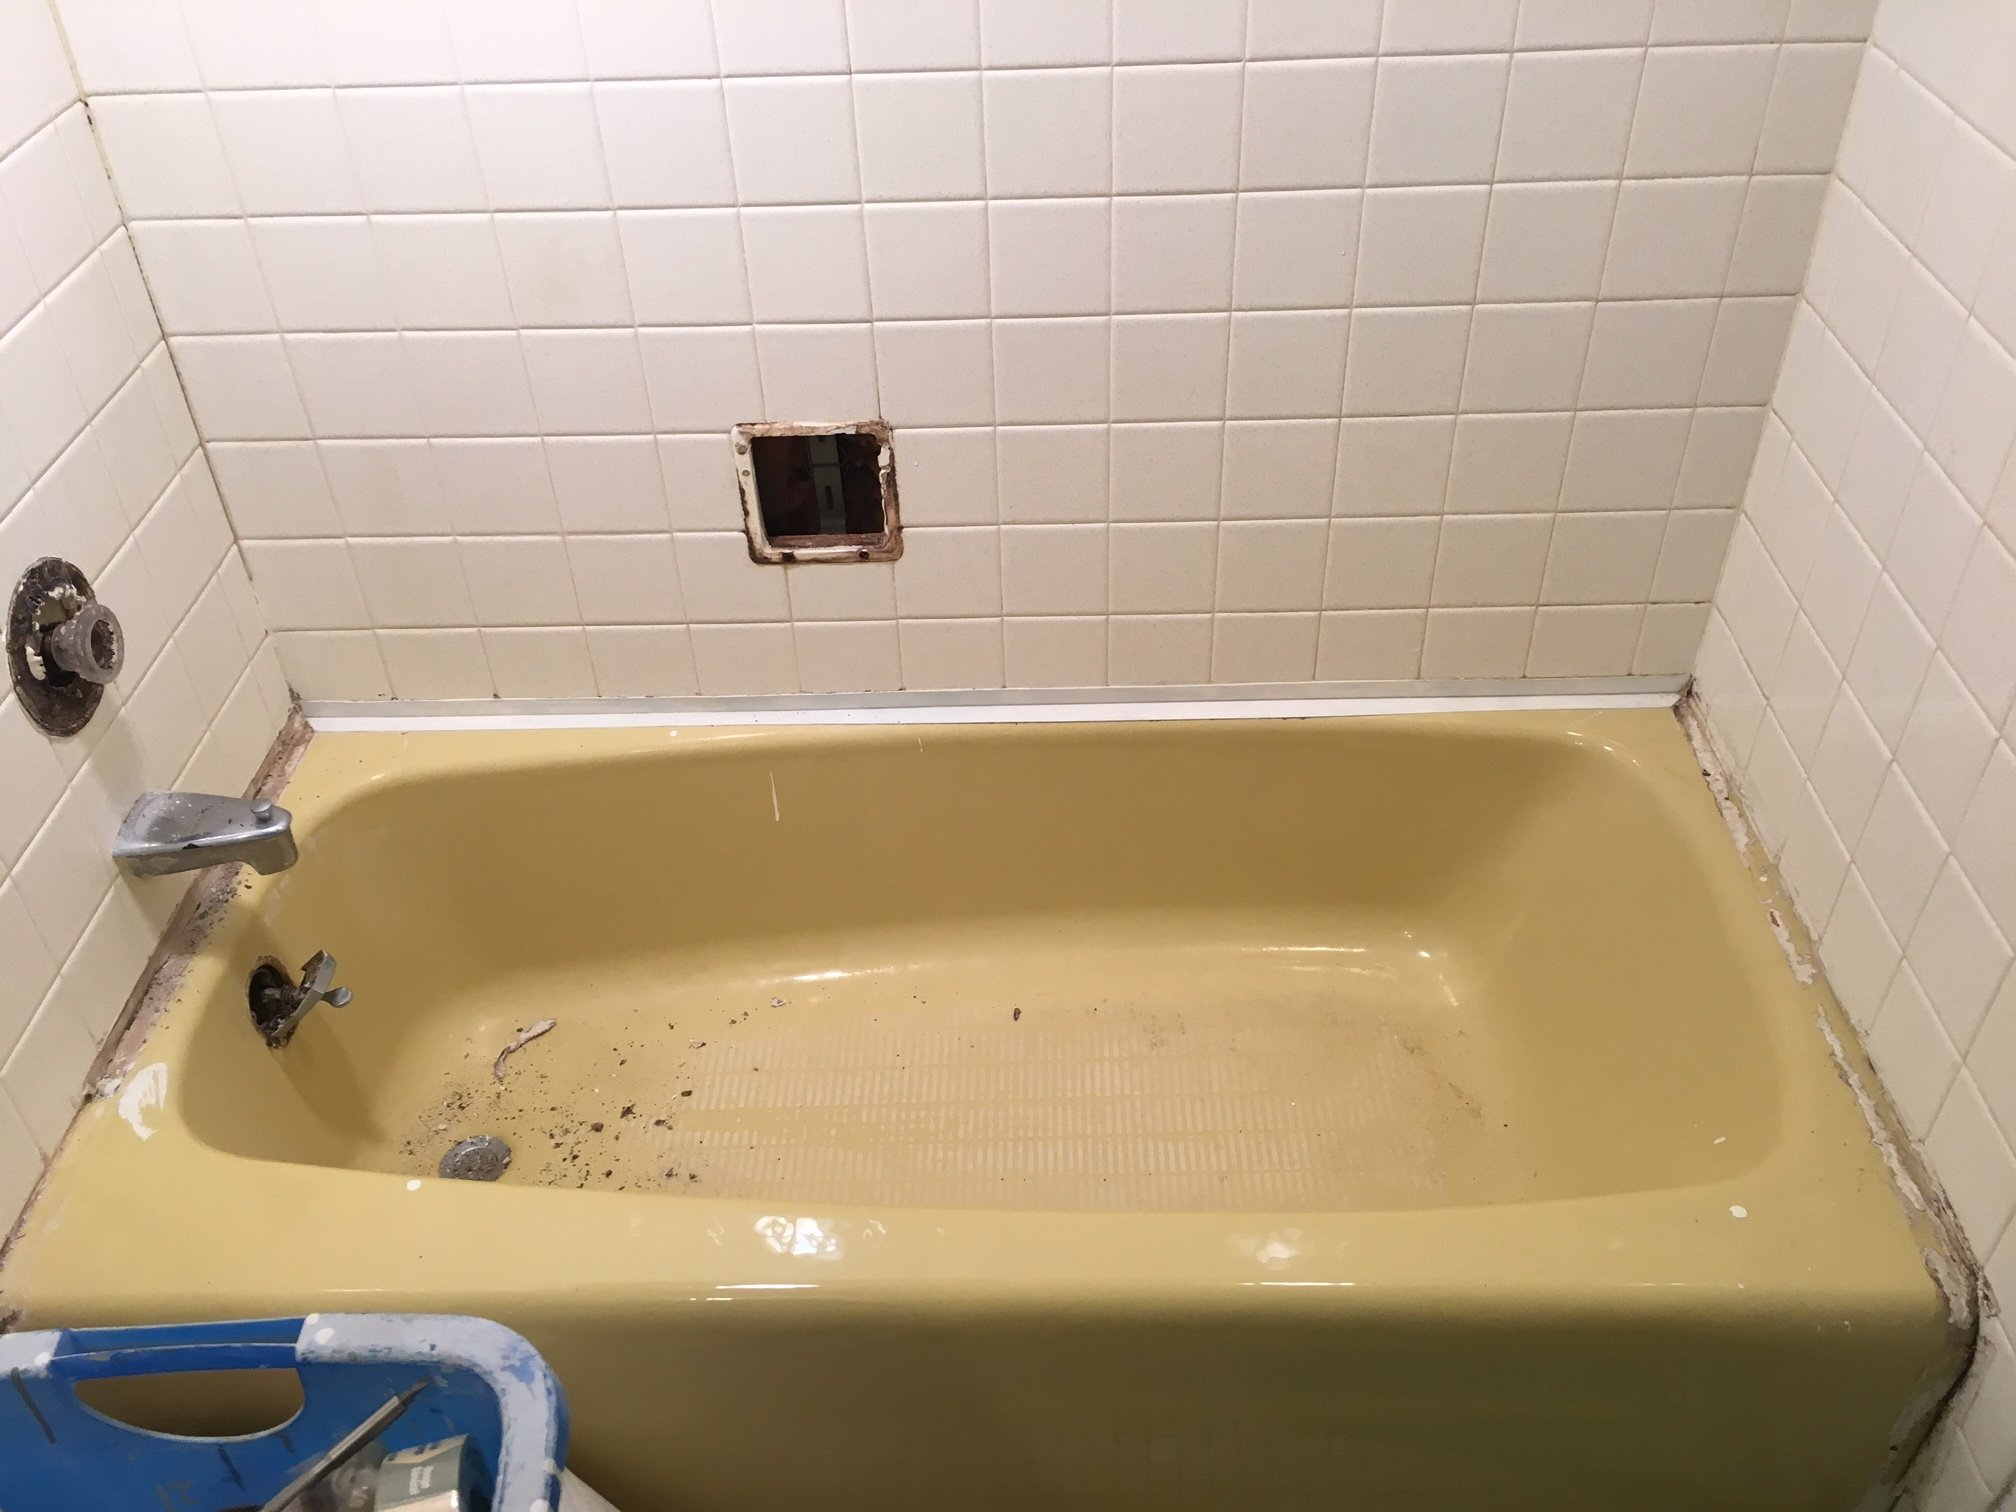 ROCKFORD IL TUB AND TILE REPAIR AND REFINISH.